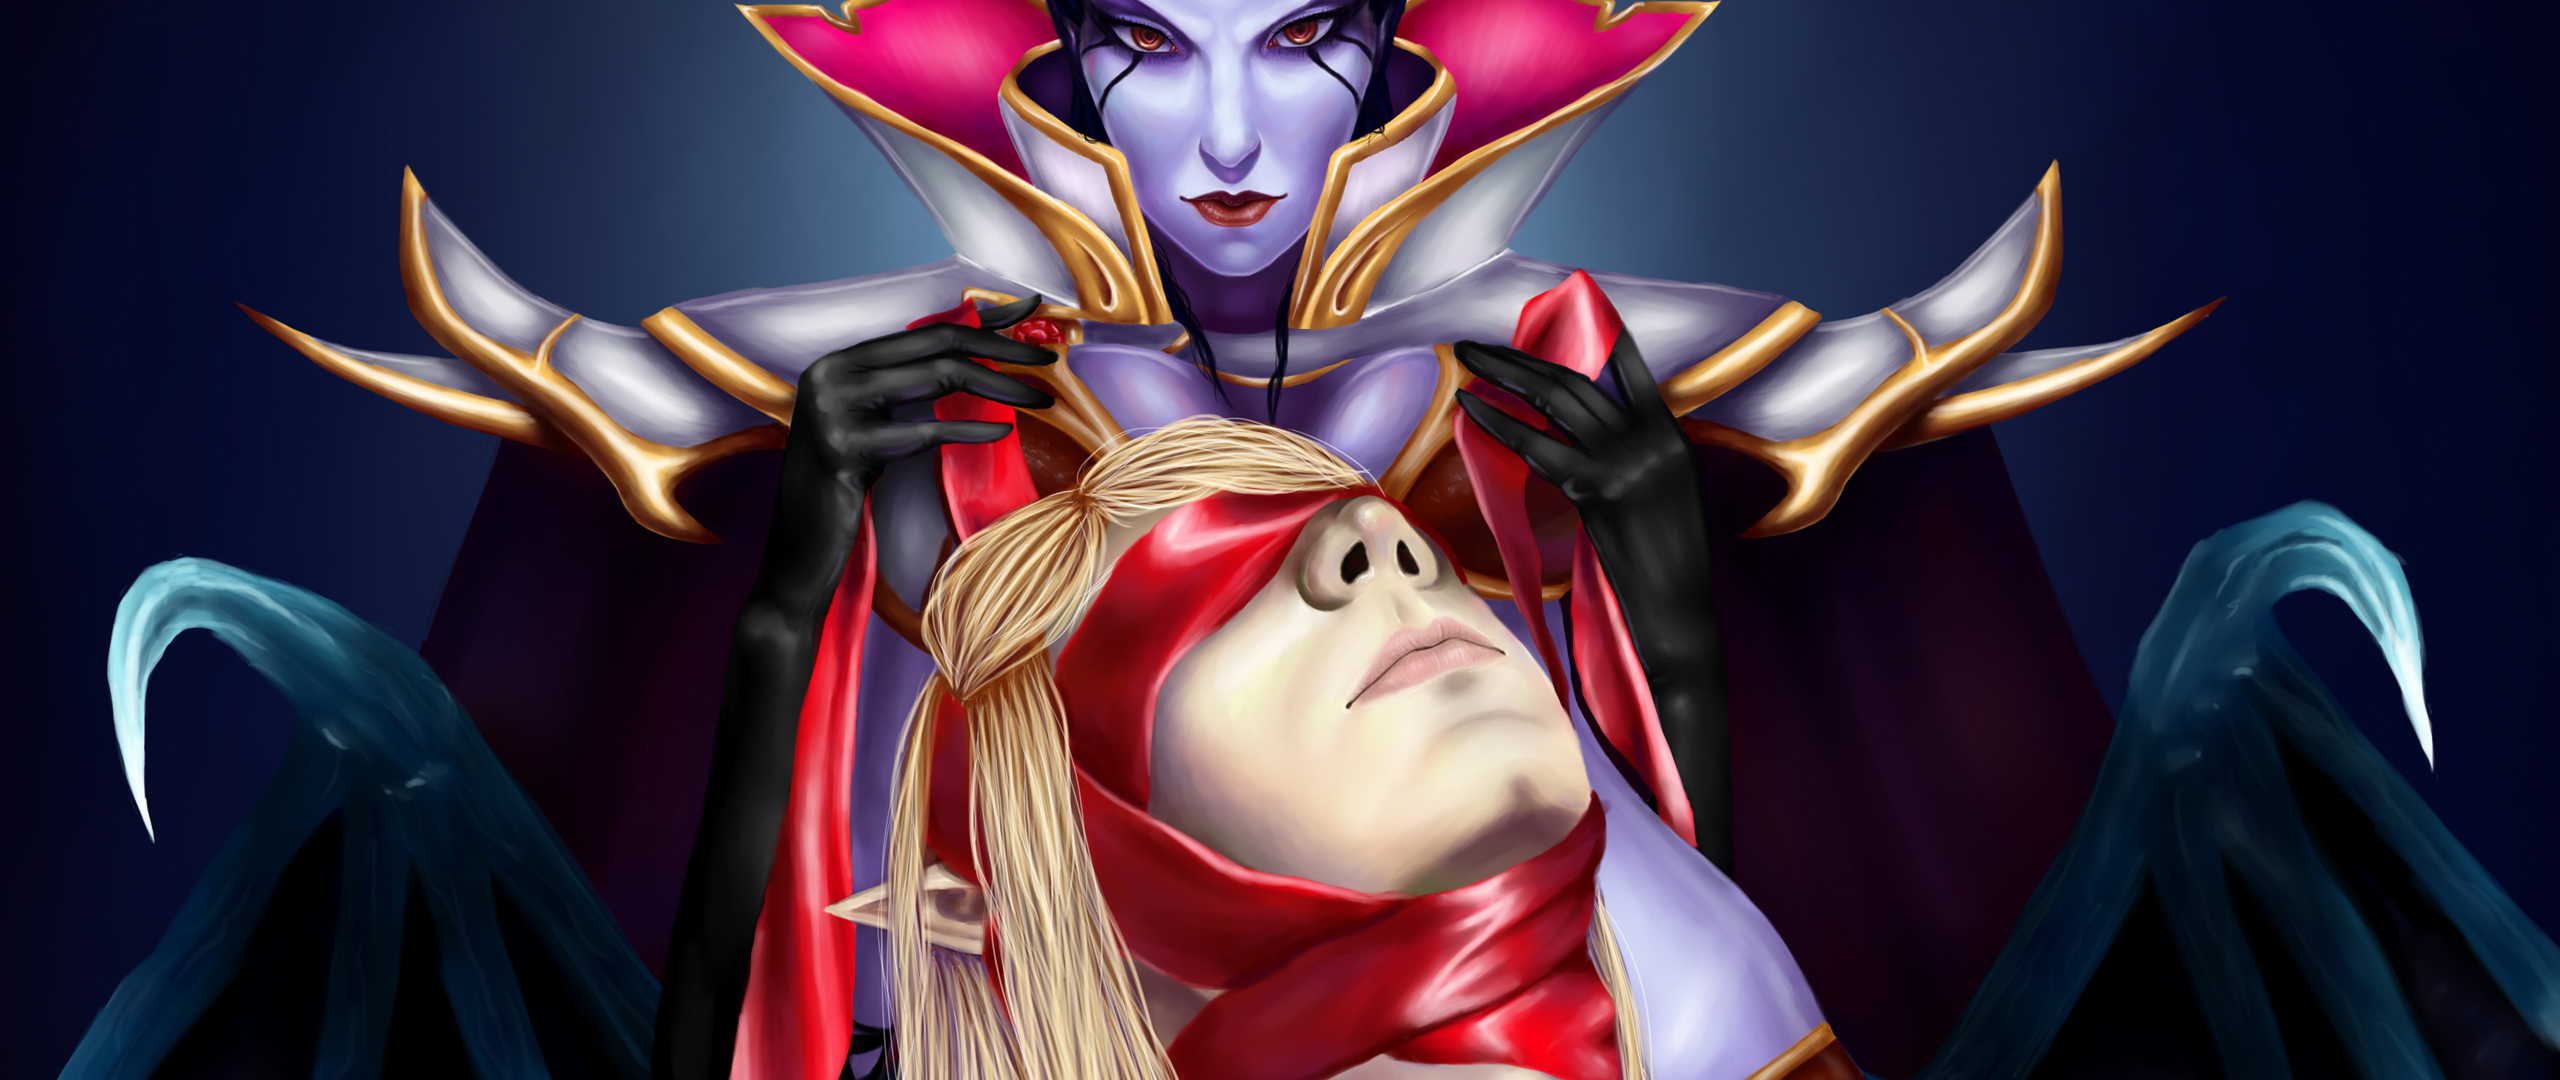 2560x1080 Queen Of Pain Invoker Dota 2 2560x1080 Resolution